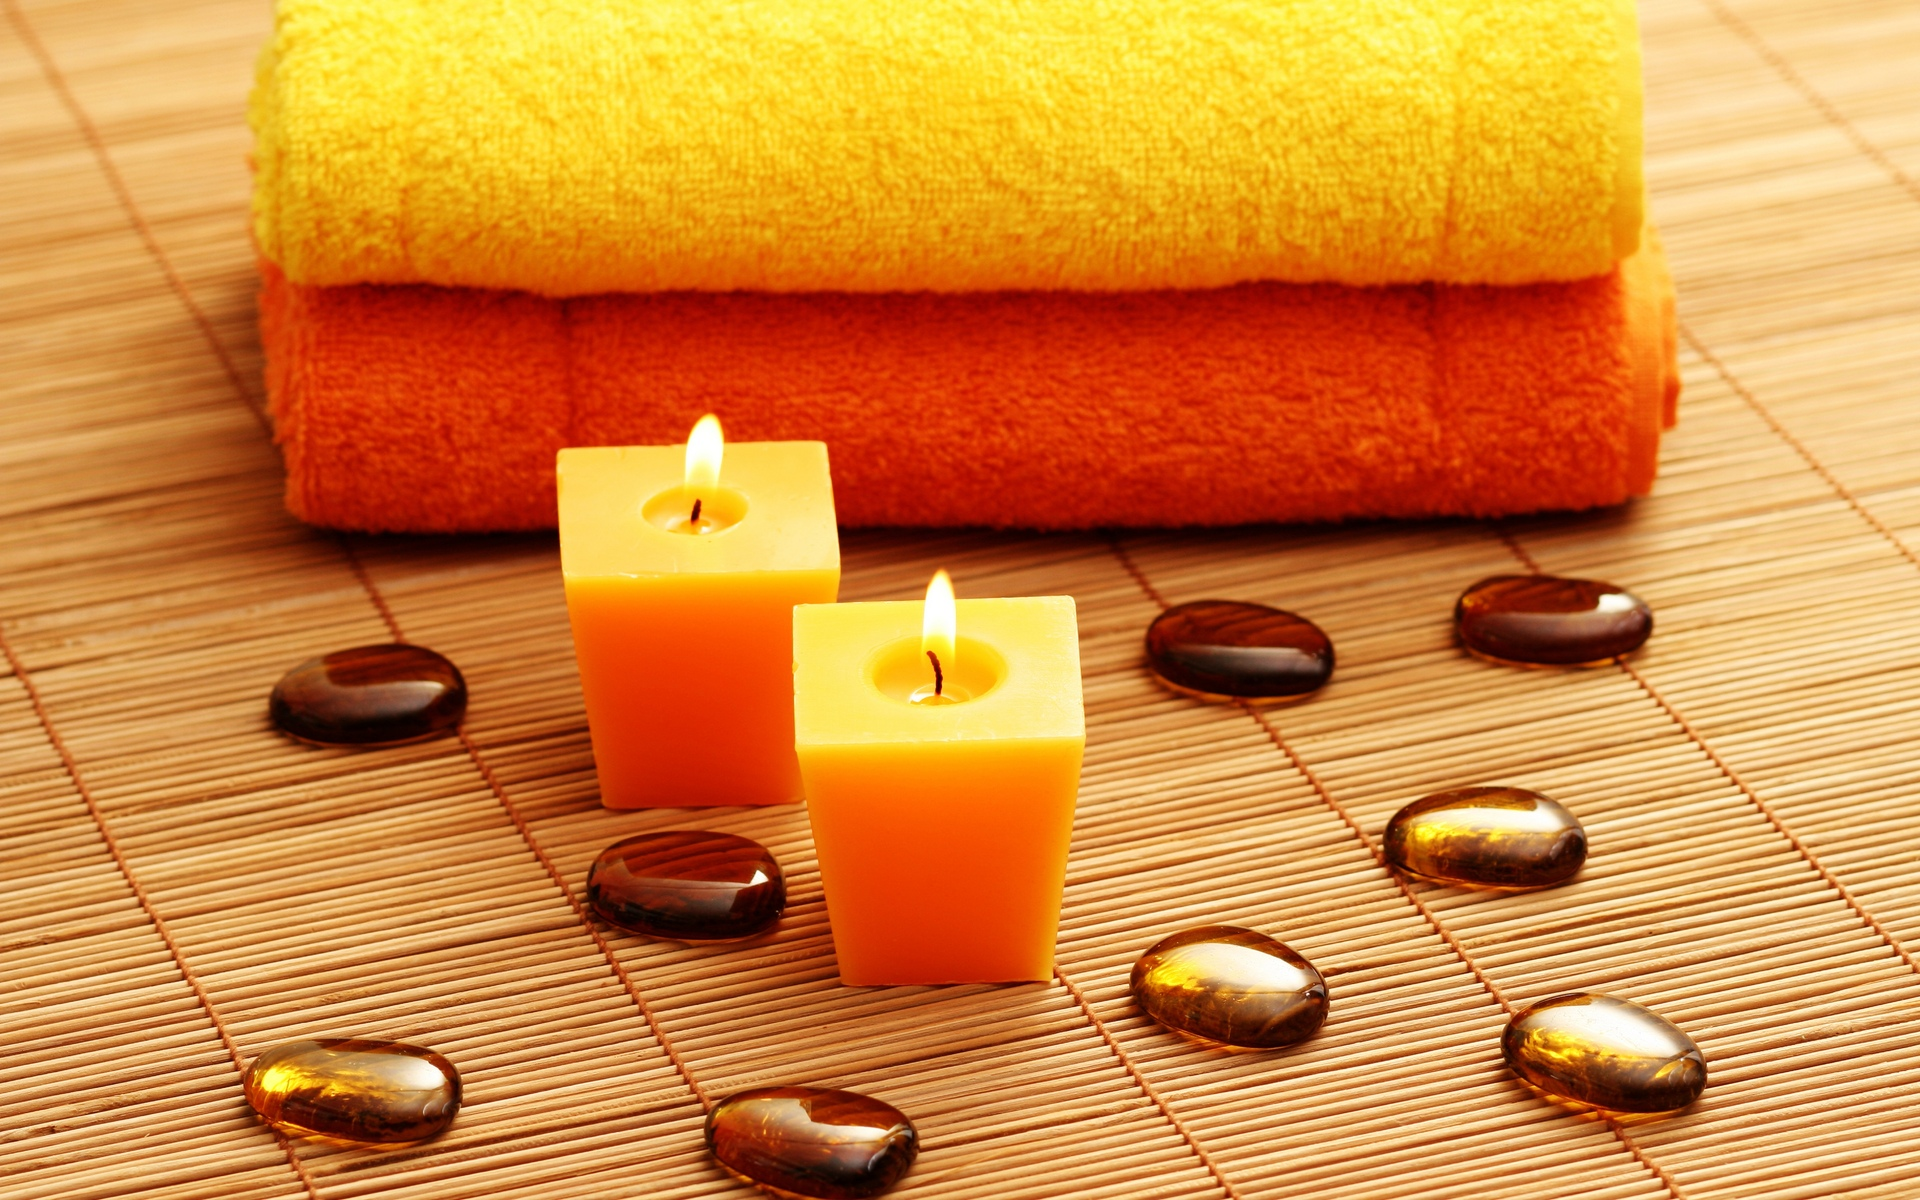 candles spa stones spa bokeh mood fire flames zen wallpaper background 1920x1200